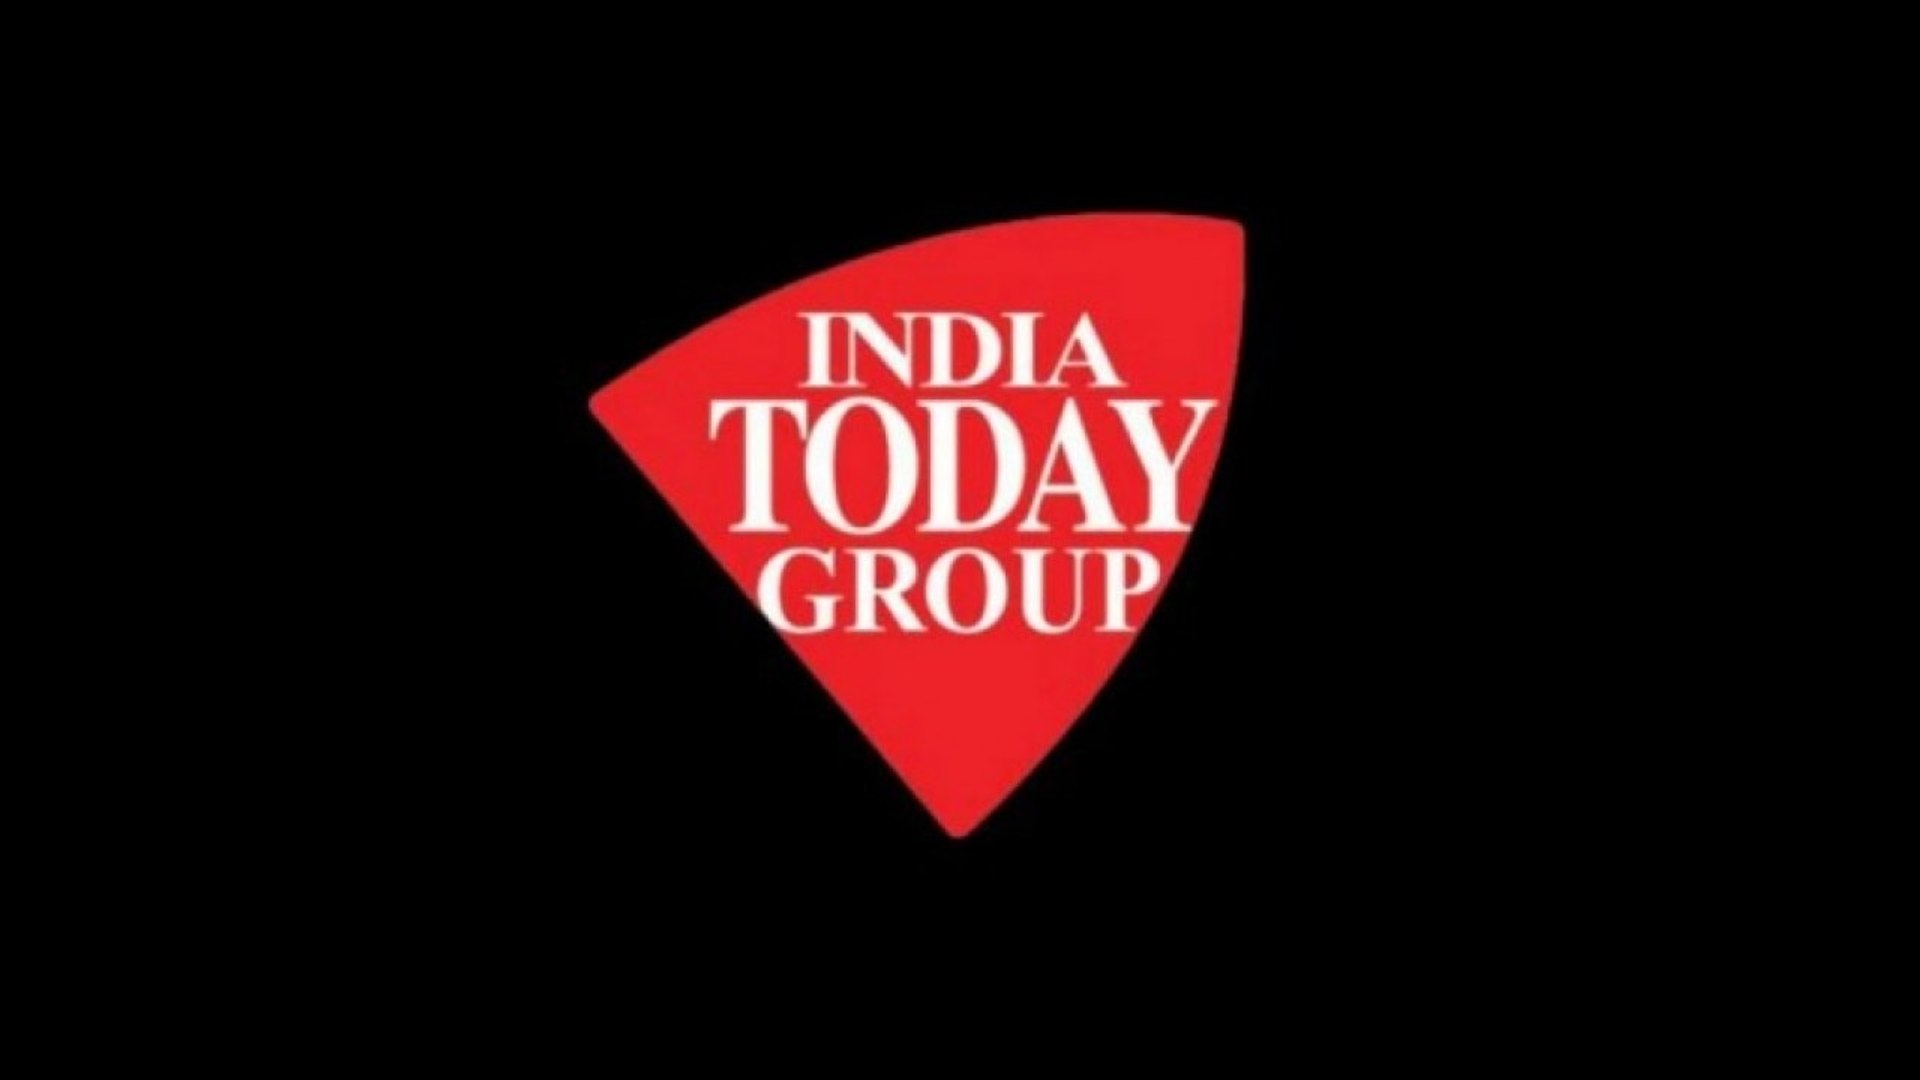 Top honours for India Today Group at ENBA